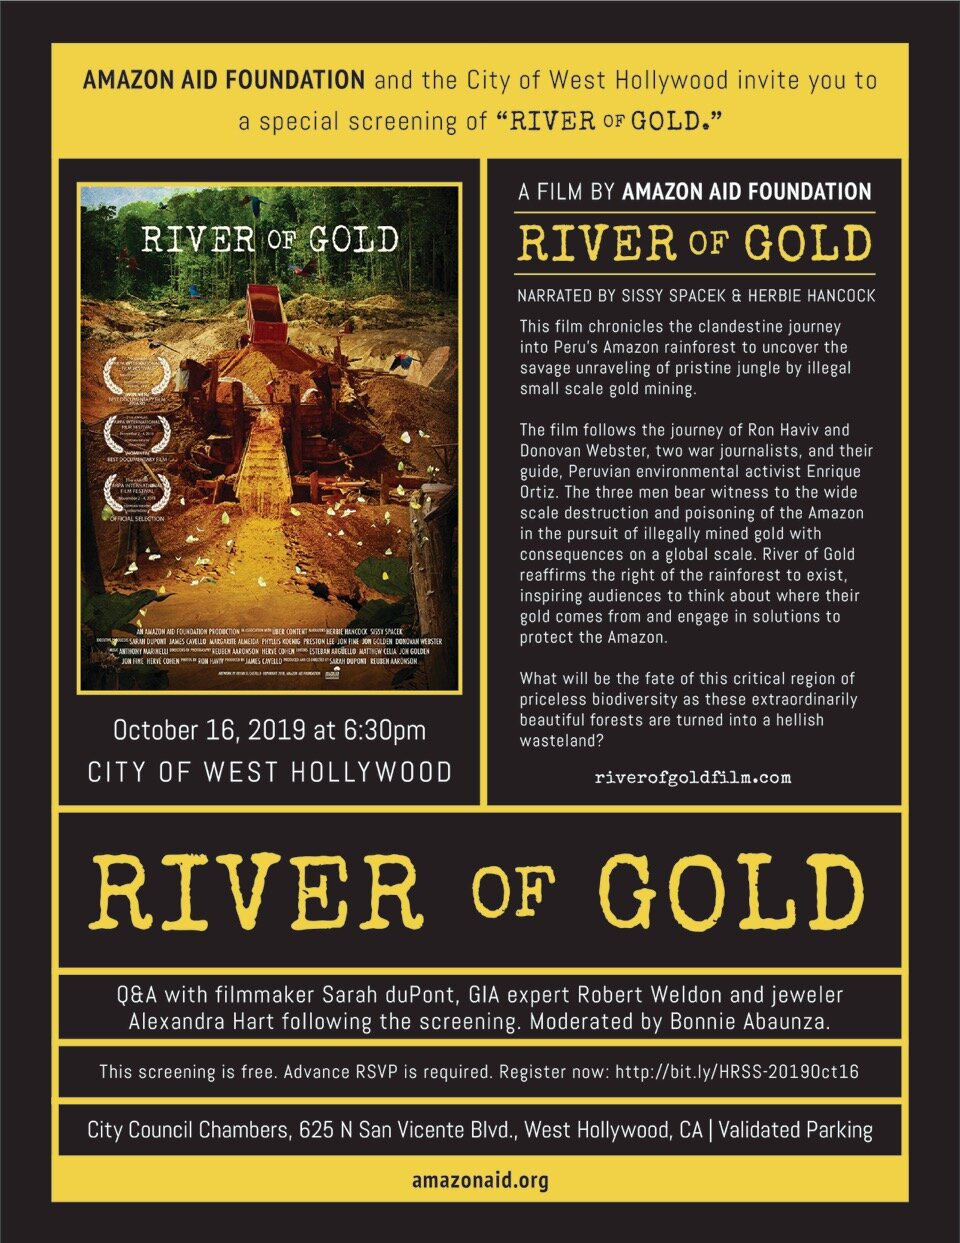 River-of-Gold-West-Hollywood-Screening-Invite.jpeg